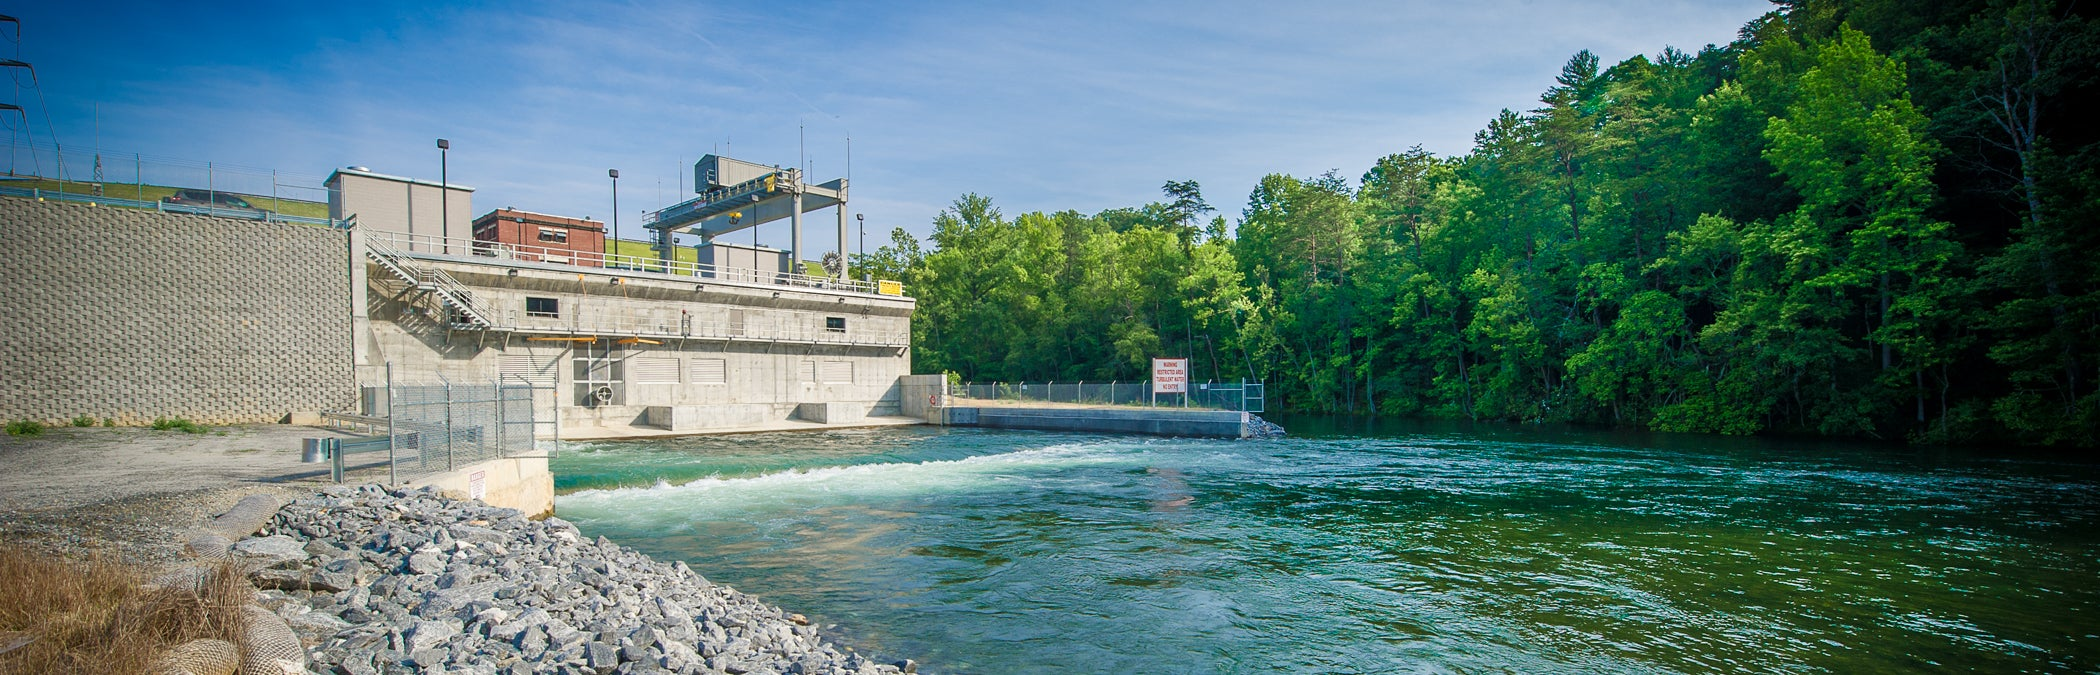 Hydropower | HDR, Alternative Energy Today